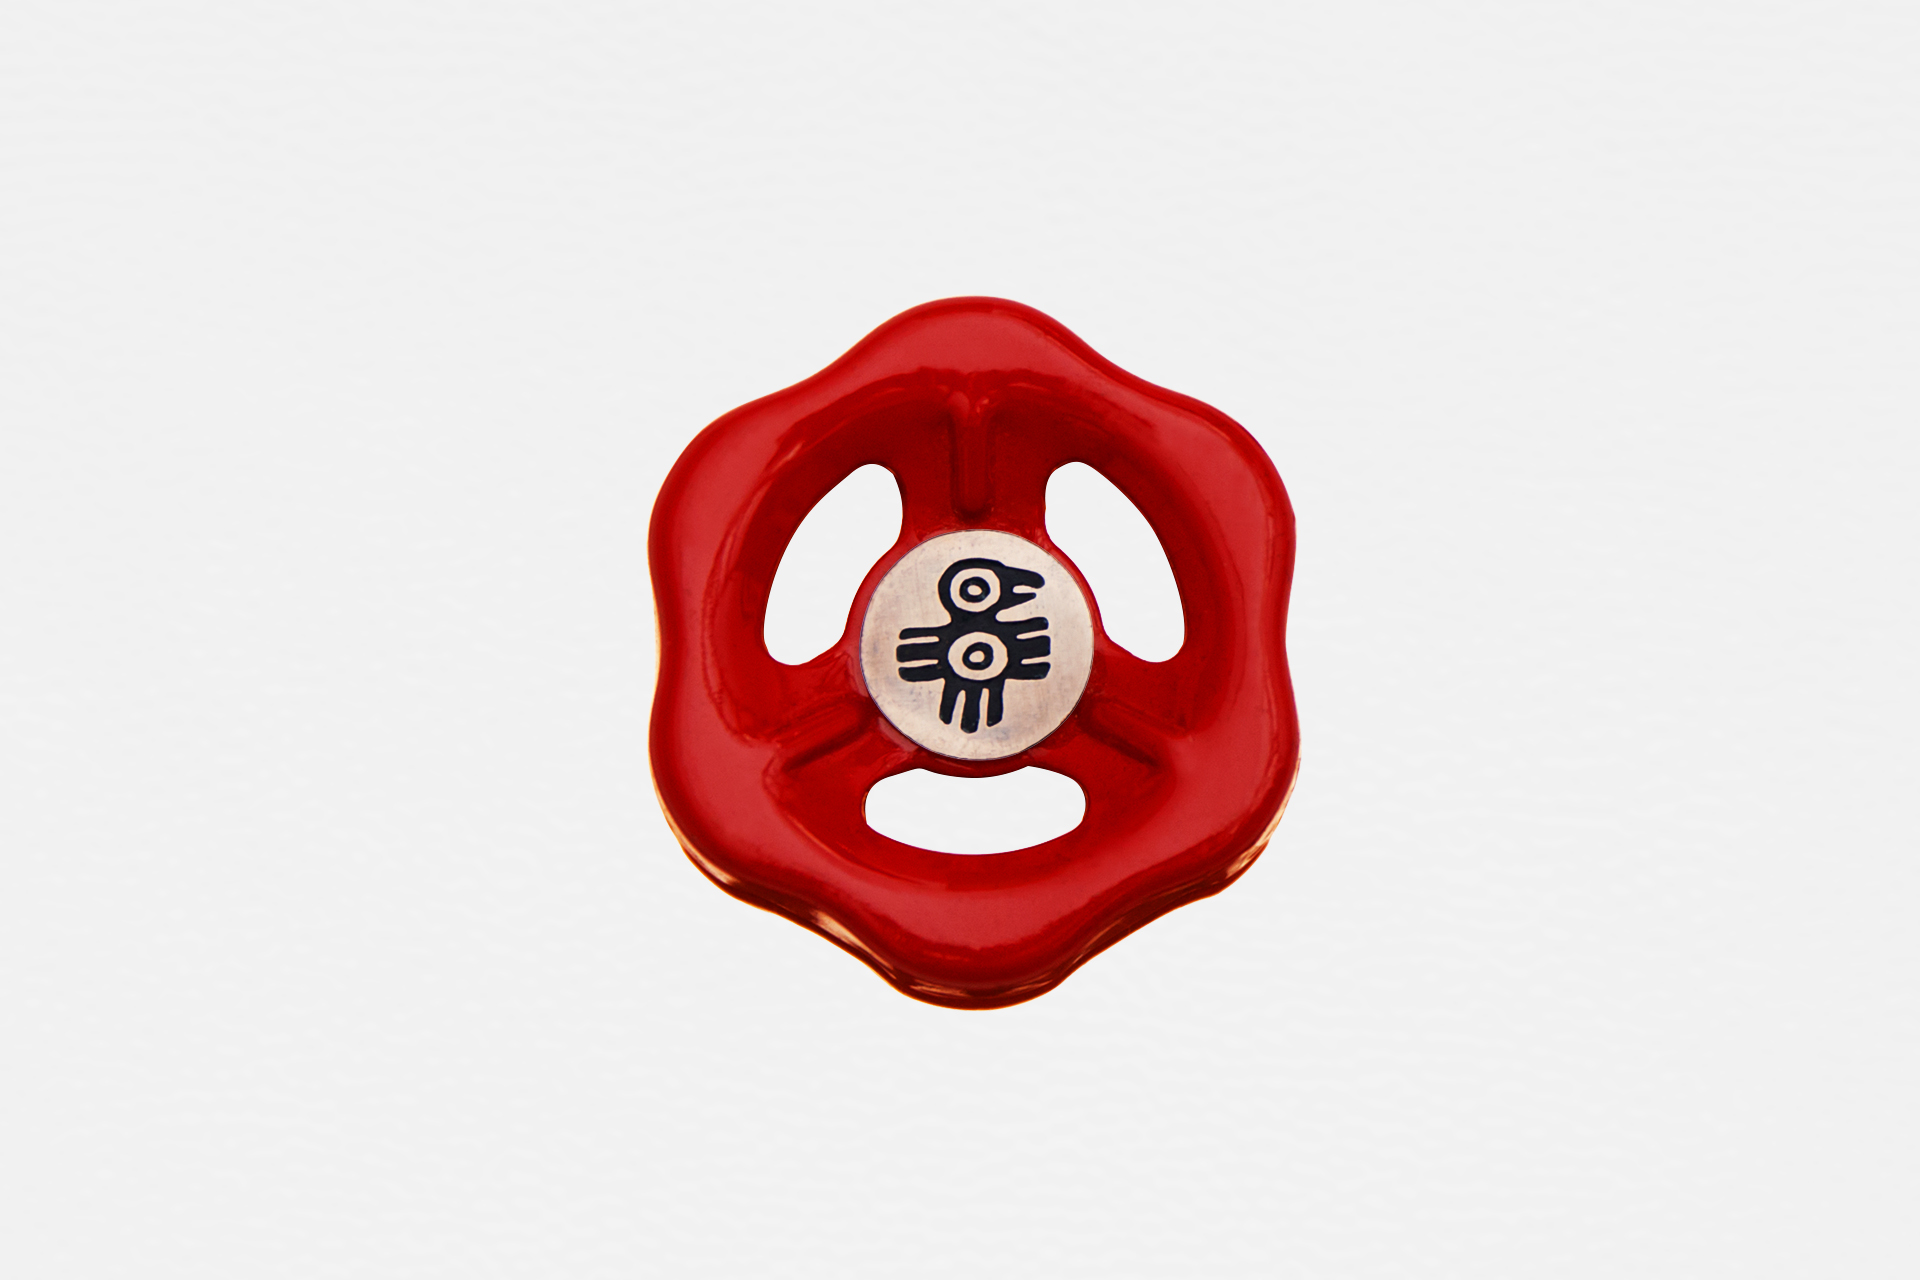 Dimmer light switch knob in red color for industrial interiors